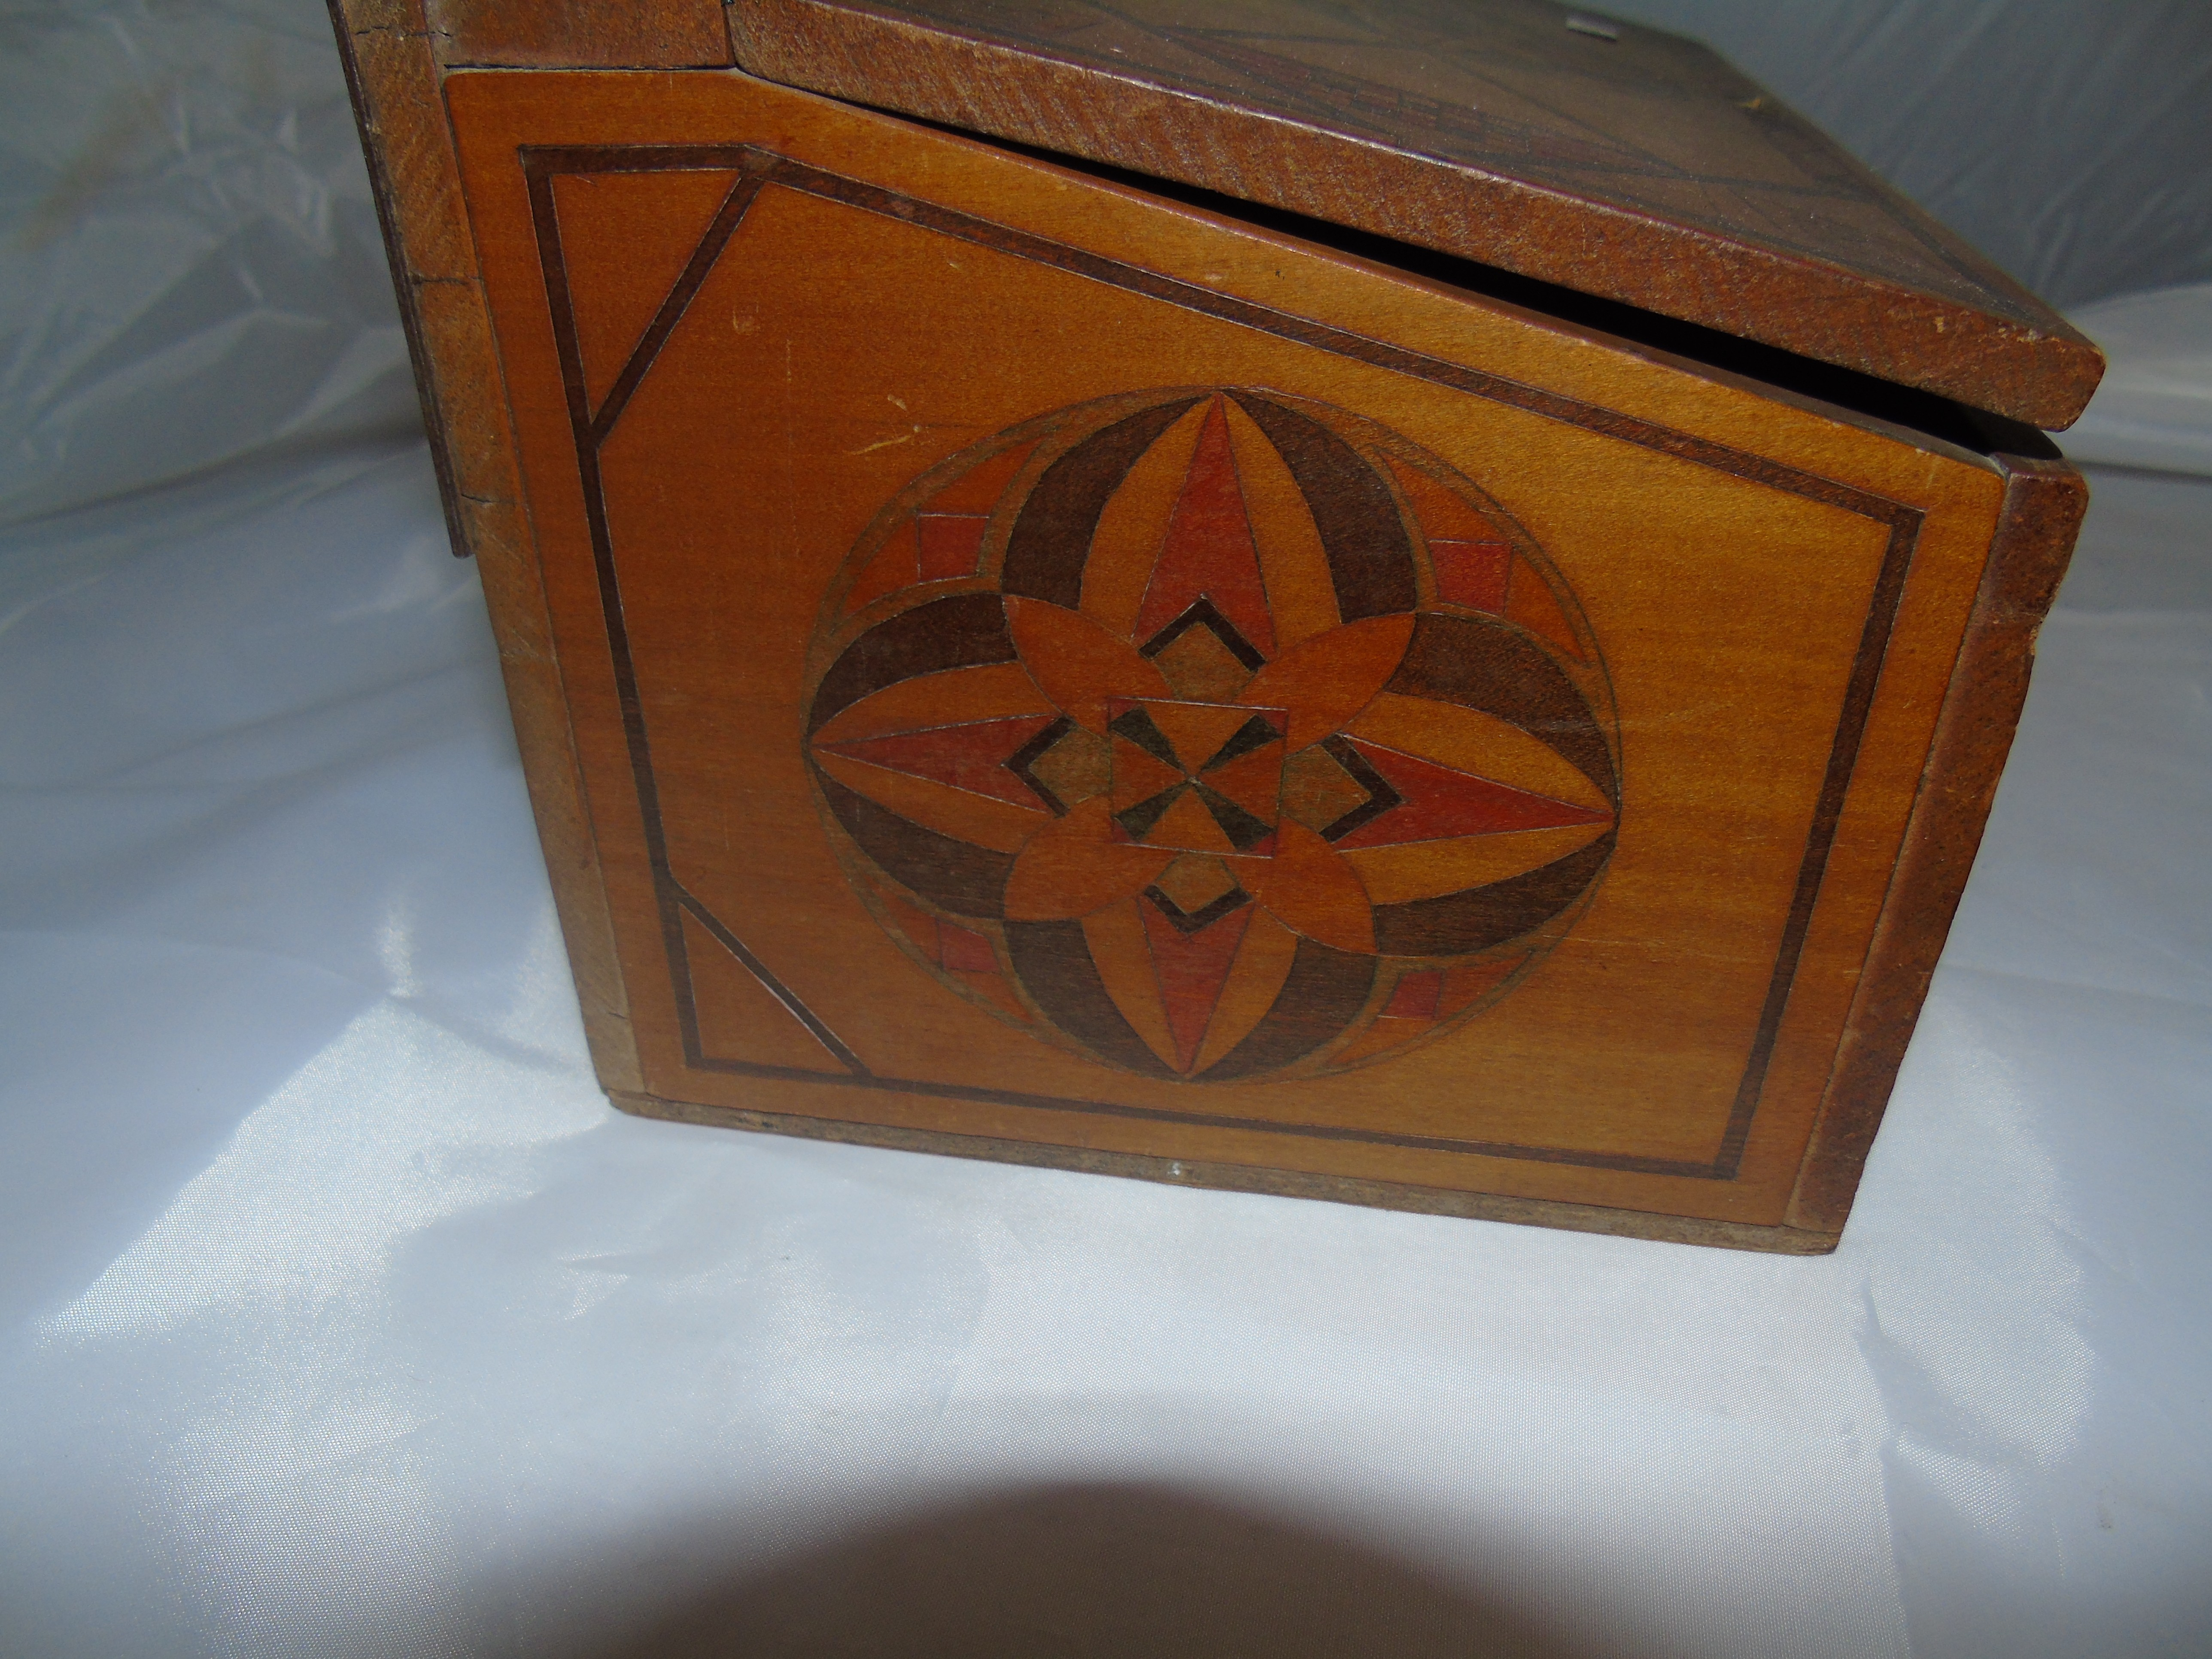 Lot 54 - OLIVE WOOD WALL MOUNTED GLOVE BOX HANDSCHPENEN & OTHER INCISED DECORATION EST [£20-£40]